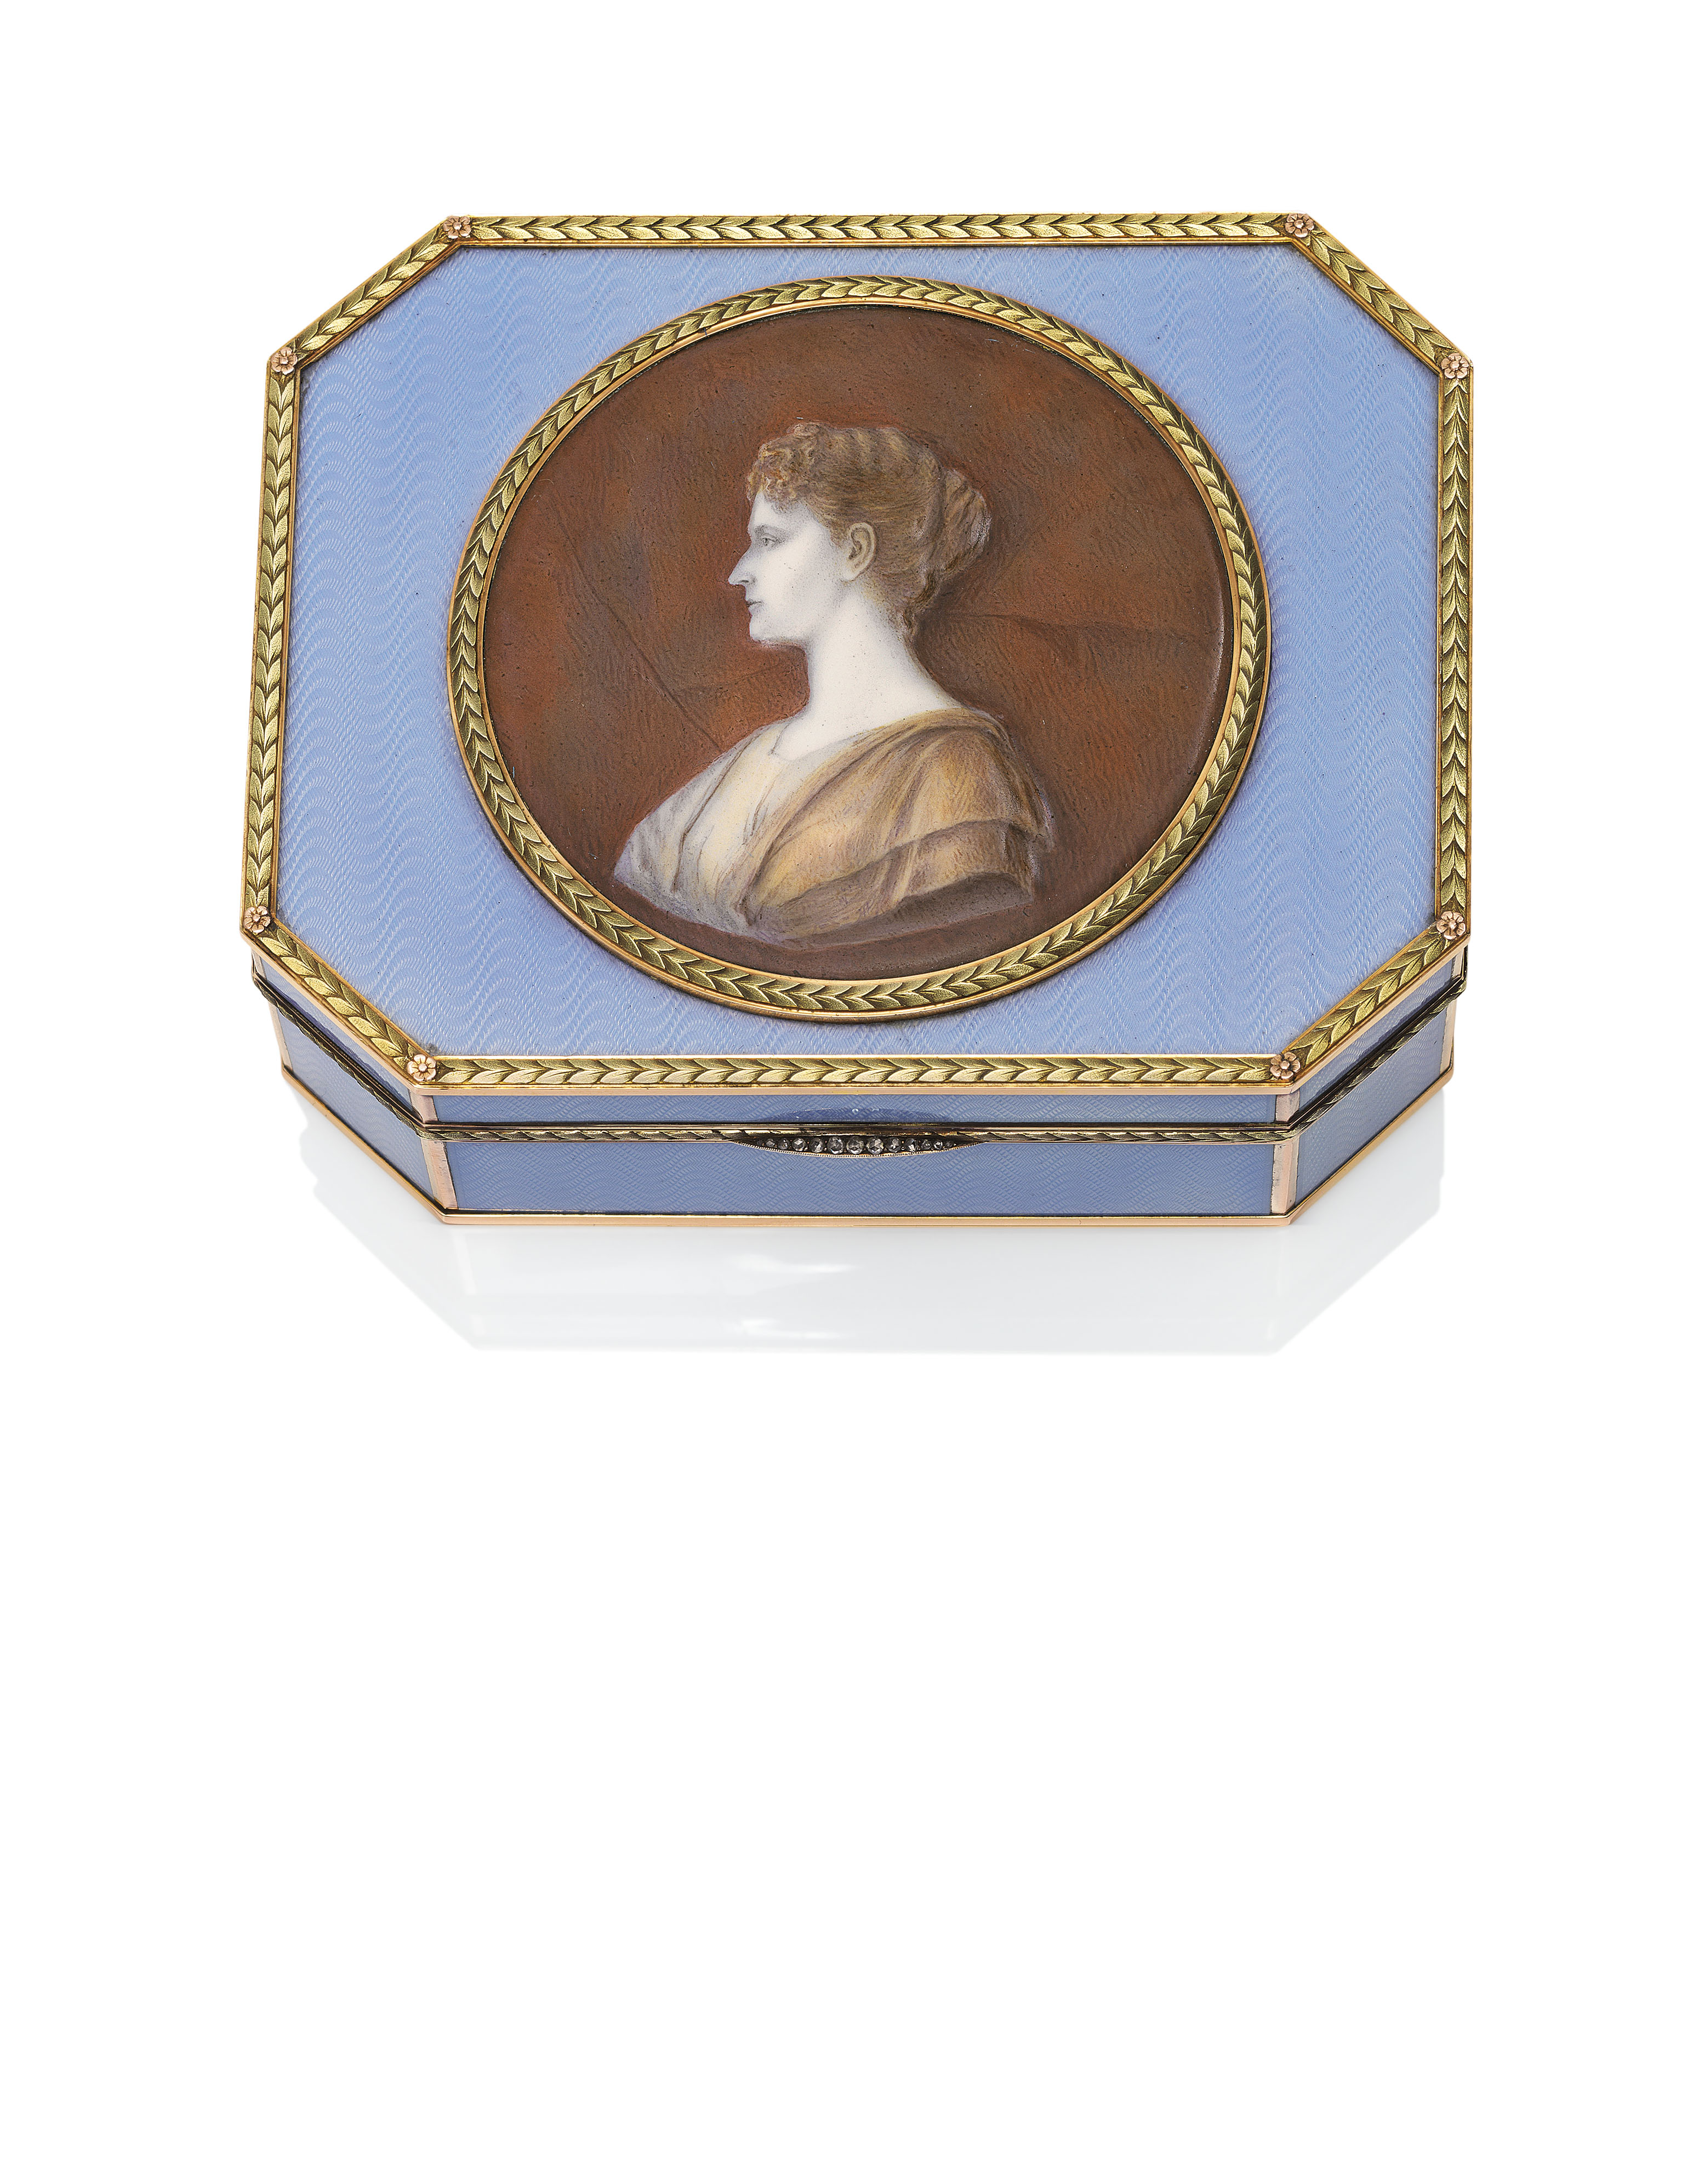 AN IMPRESSIVE AND RARE JEWELLED AND GUILLOCHÉ ENAMEL TWO-COLOUR GOLD-MOUNTED SILVER IMPERIAL PRESENTATION SNUFF BOX WITH PORCELAIN PORTRAIT PLAQUE